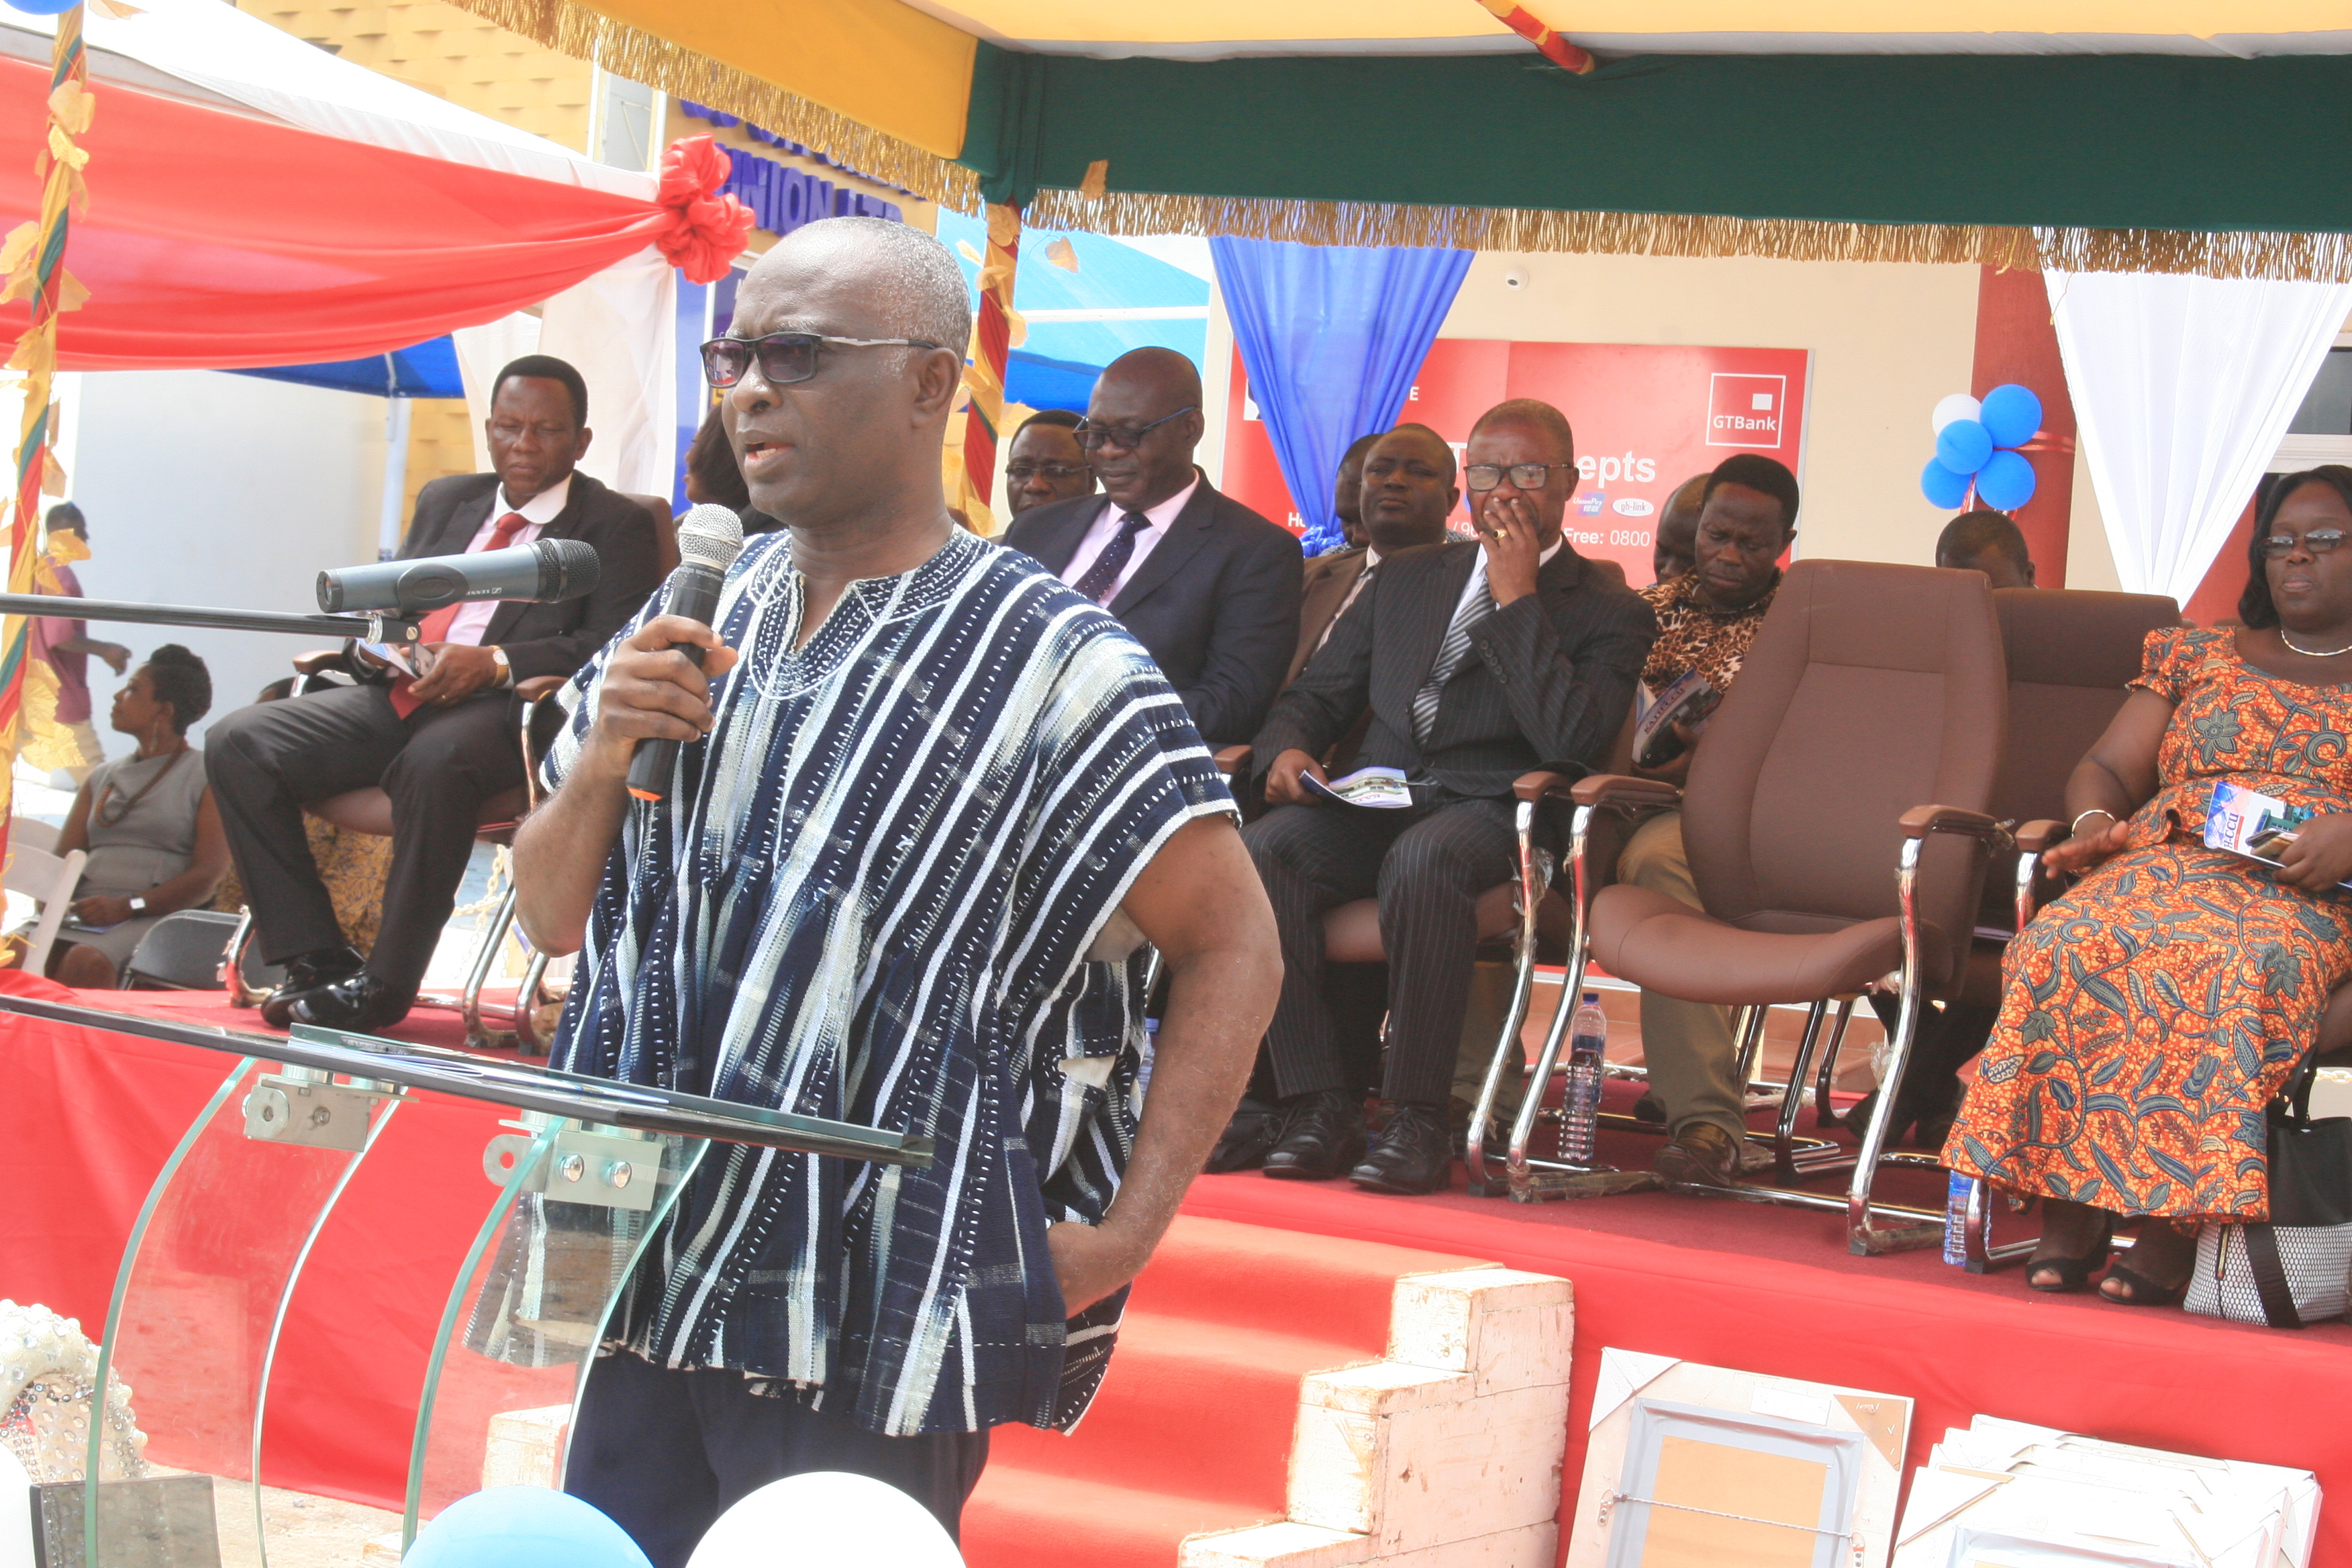 ACCEPTANCE ADDRESS BY CHAIRMAN--- MR ISAIAH OFFEH GYIMAH (FORMER DIRECTOR OF ADMINISTRATION AND FORMER CHAIRMAN OF KATHCCU)